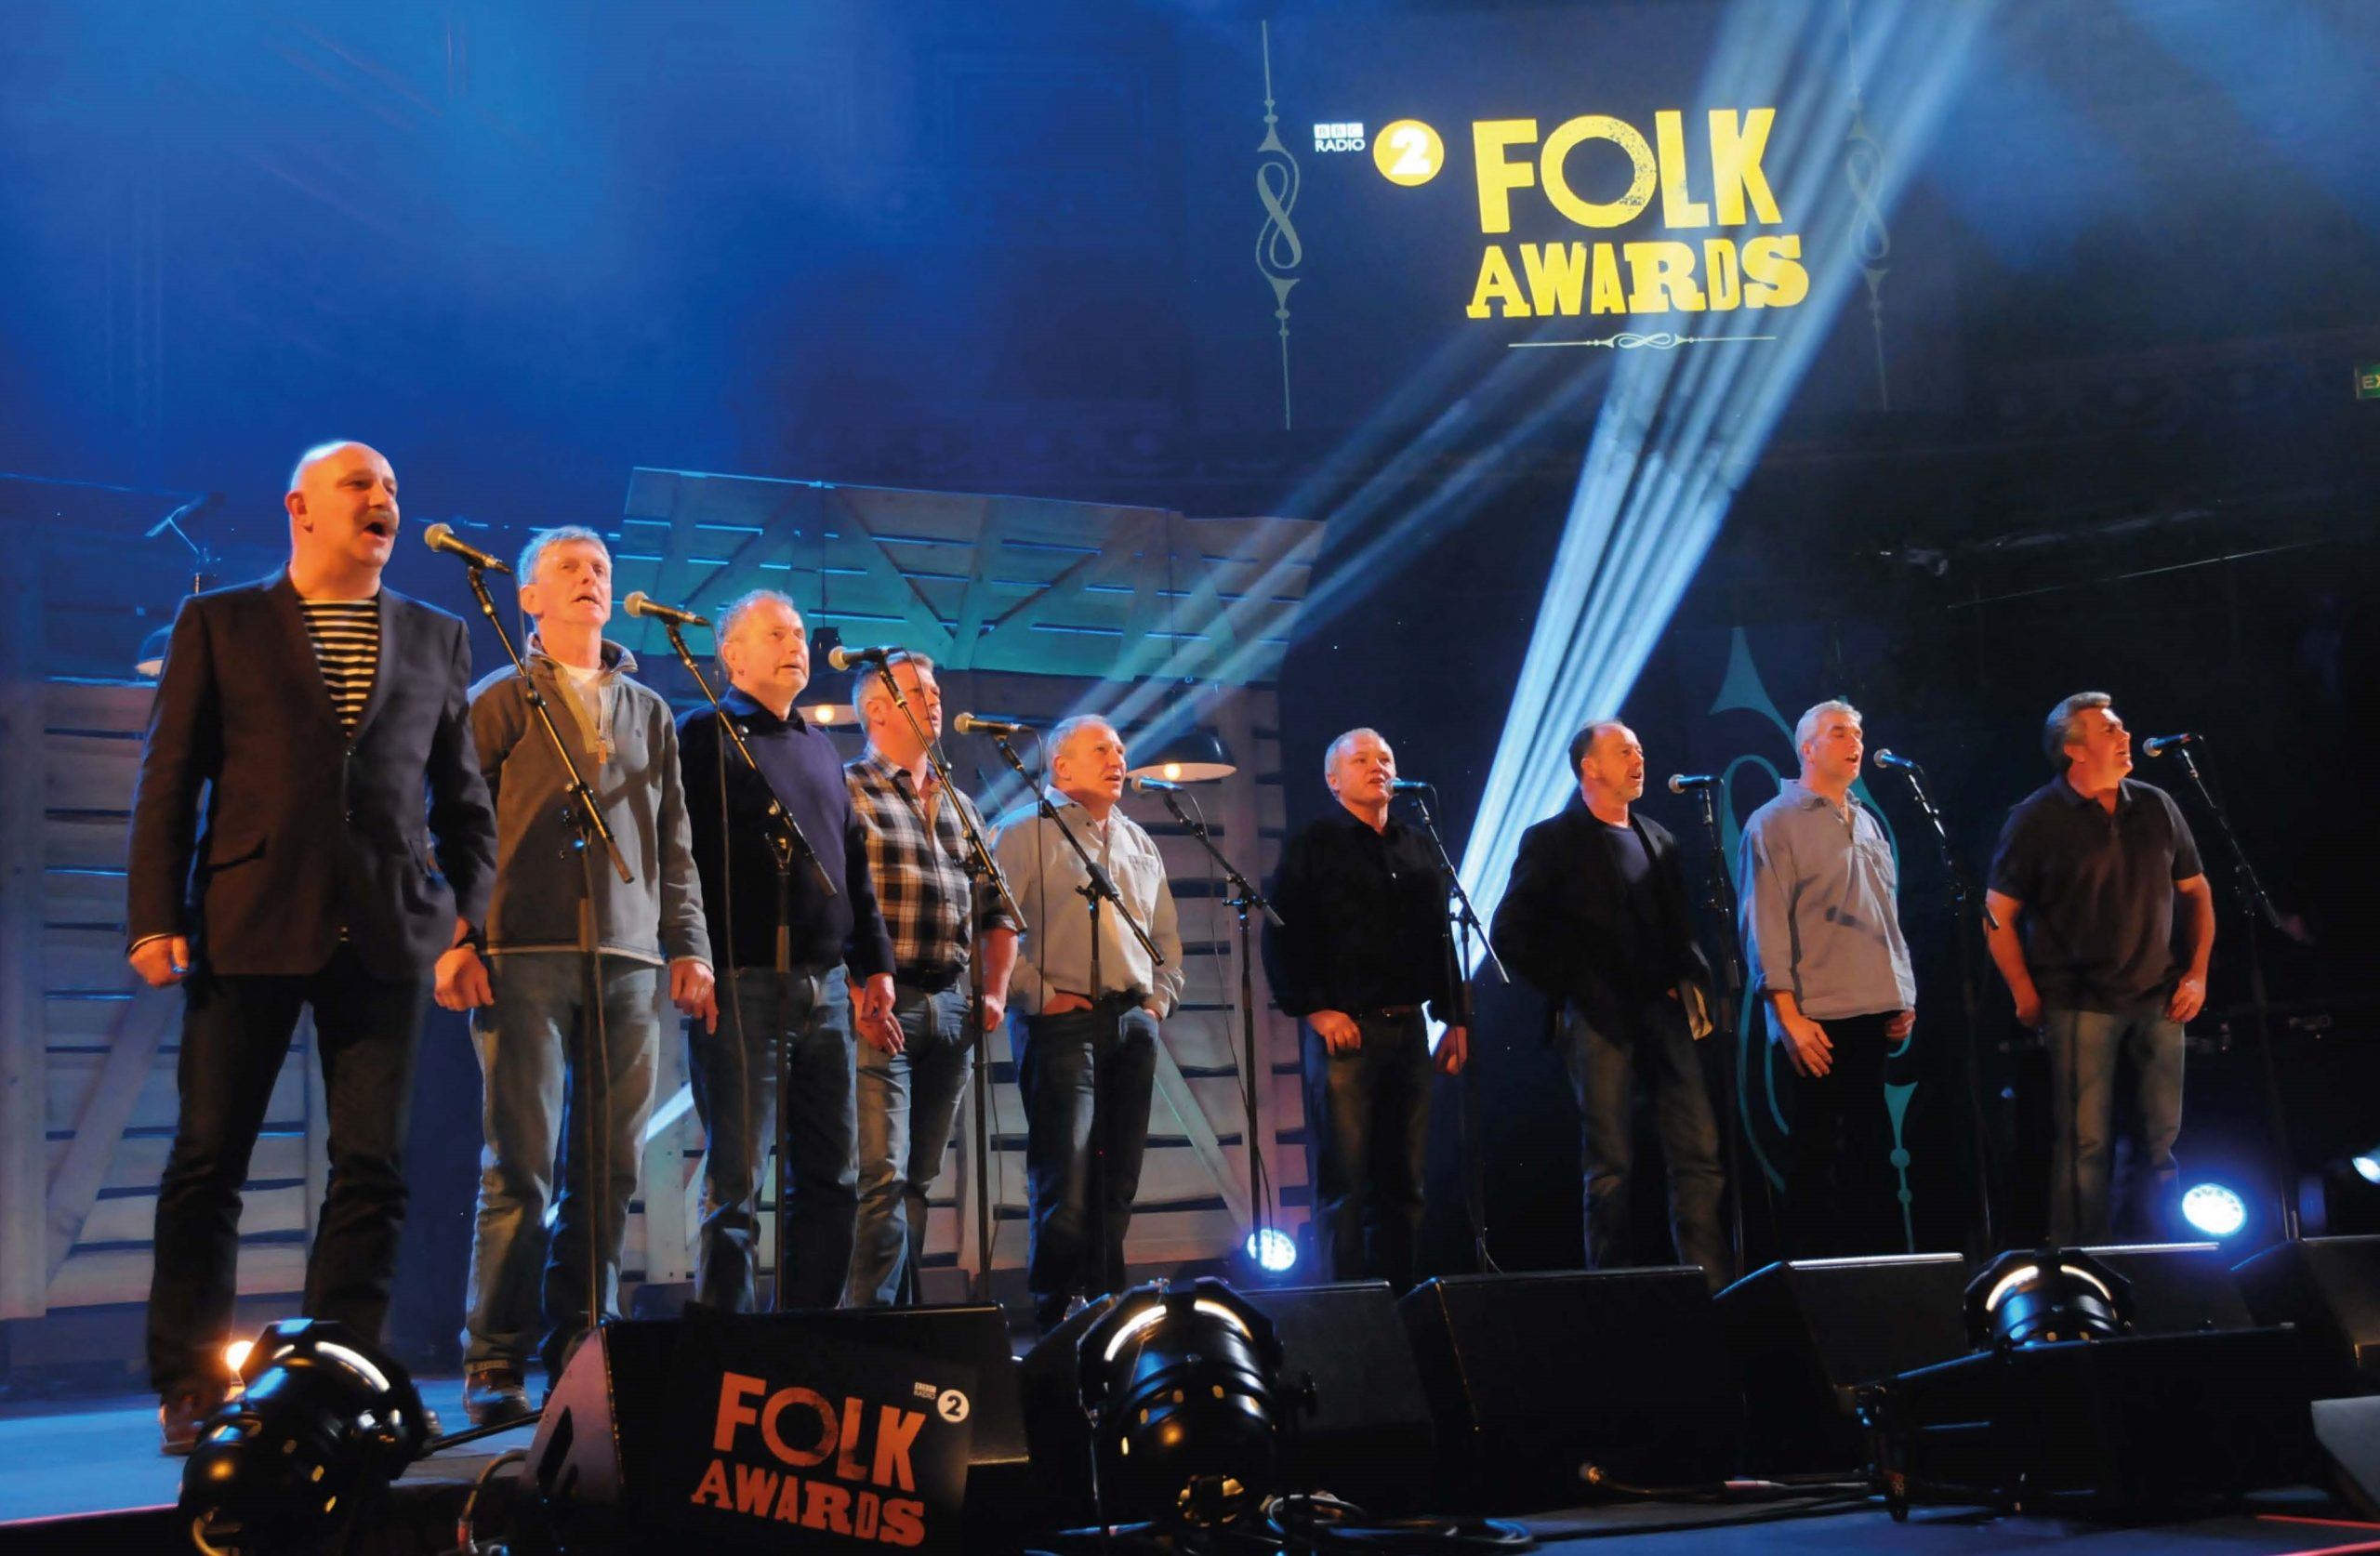 A standing ovation from the great and the good at the BBC Radio 2 Folk Awards